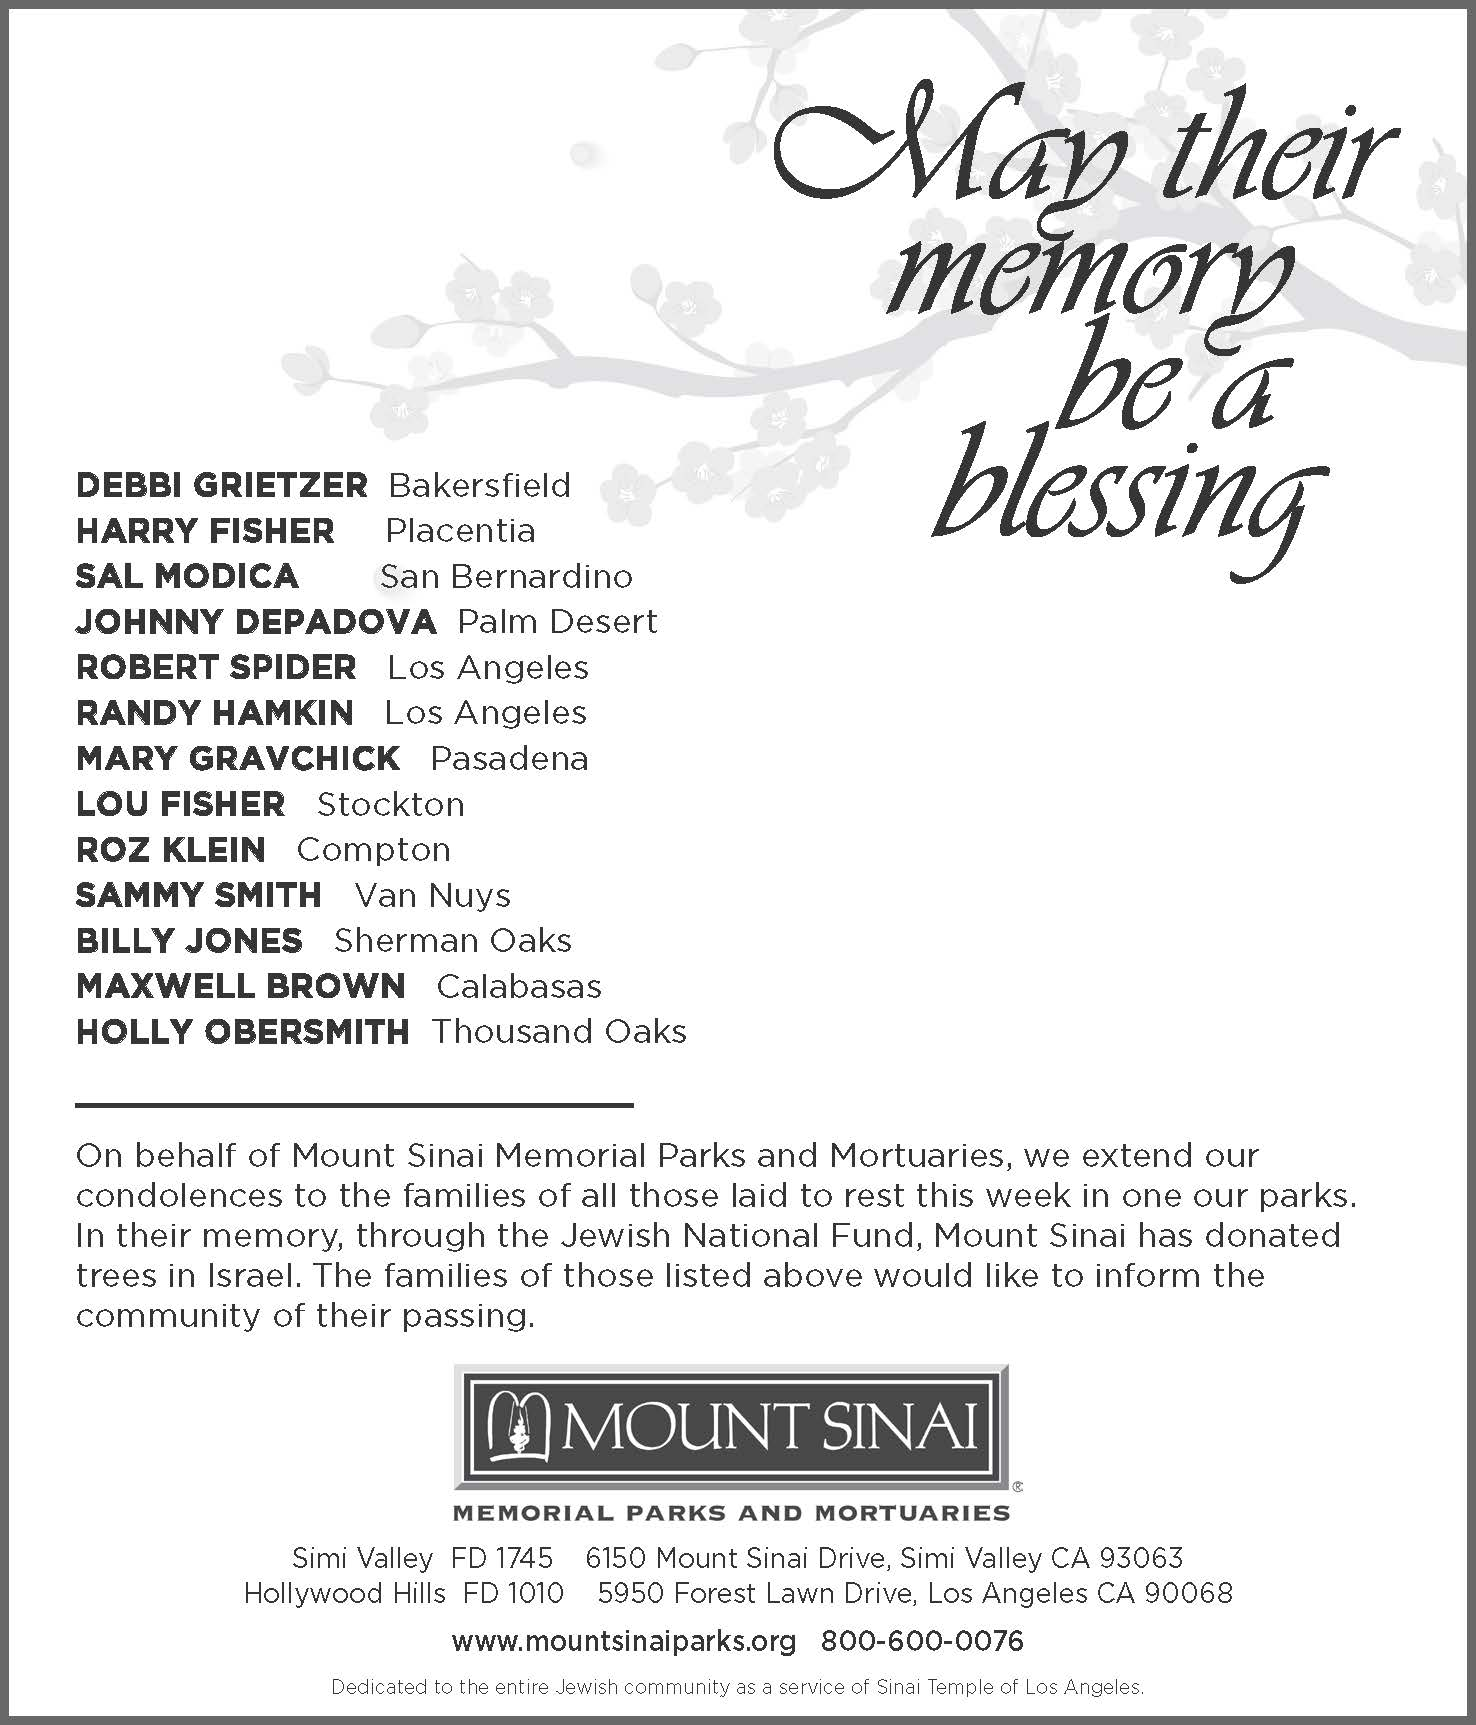 Mount Sinai Obit Ad - sample for editing